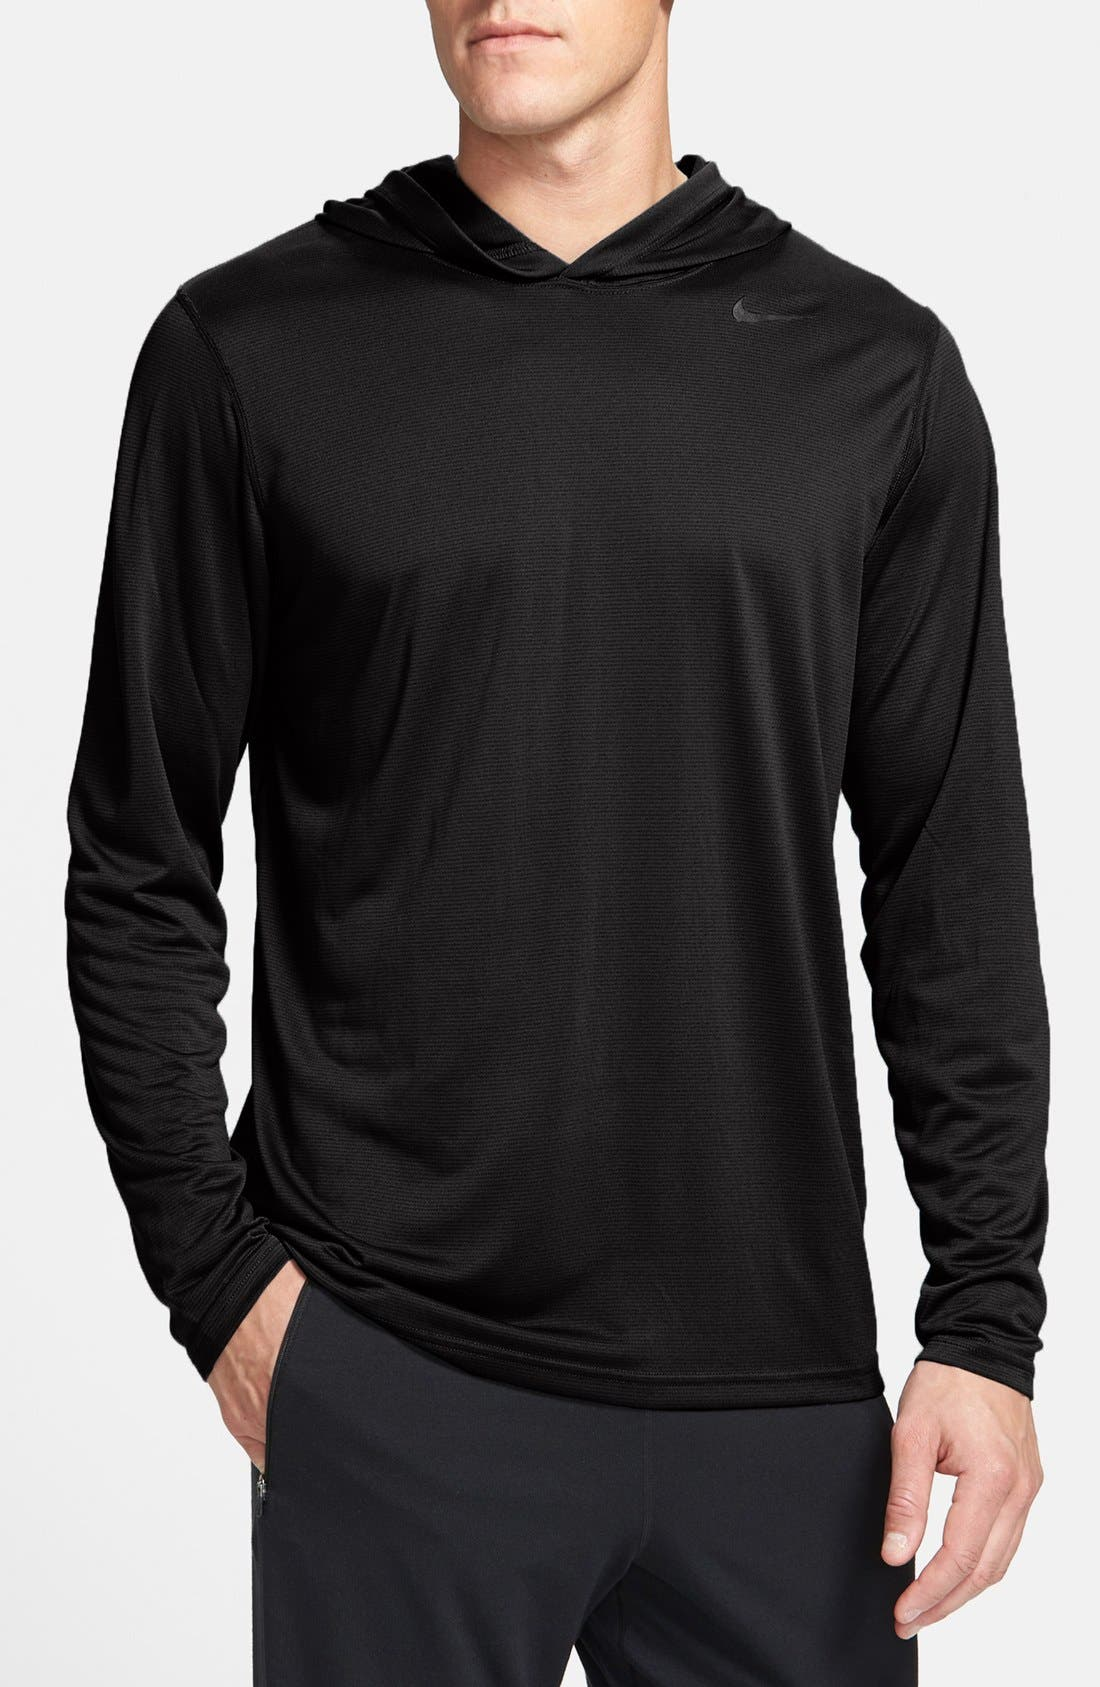 'Vapor Touch' Dri-FIT Long Sleeve Hoodie,                             Main thumbnail 1, color,                             010